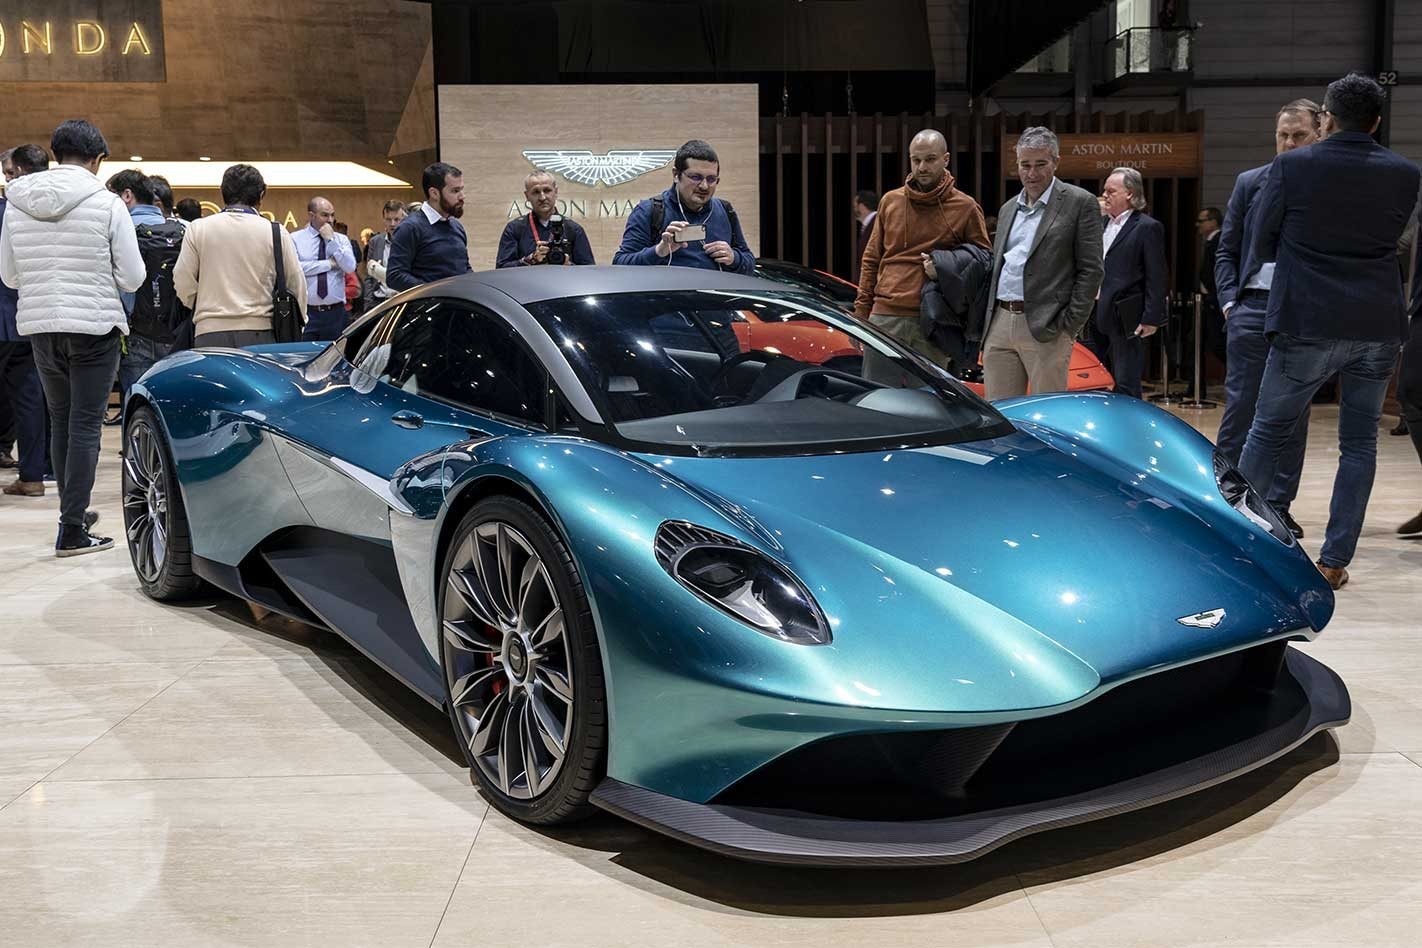 2022 aston martin vanquish engine to be less powerful than. Black Bedroom Furniture Sets. Home Design Ideas